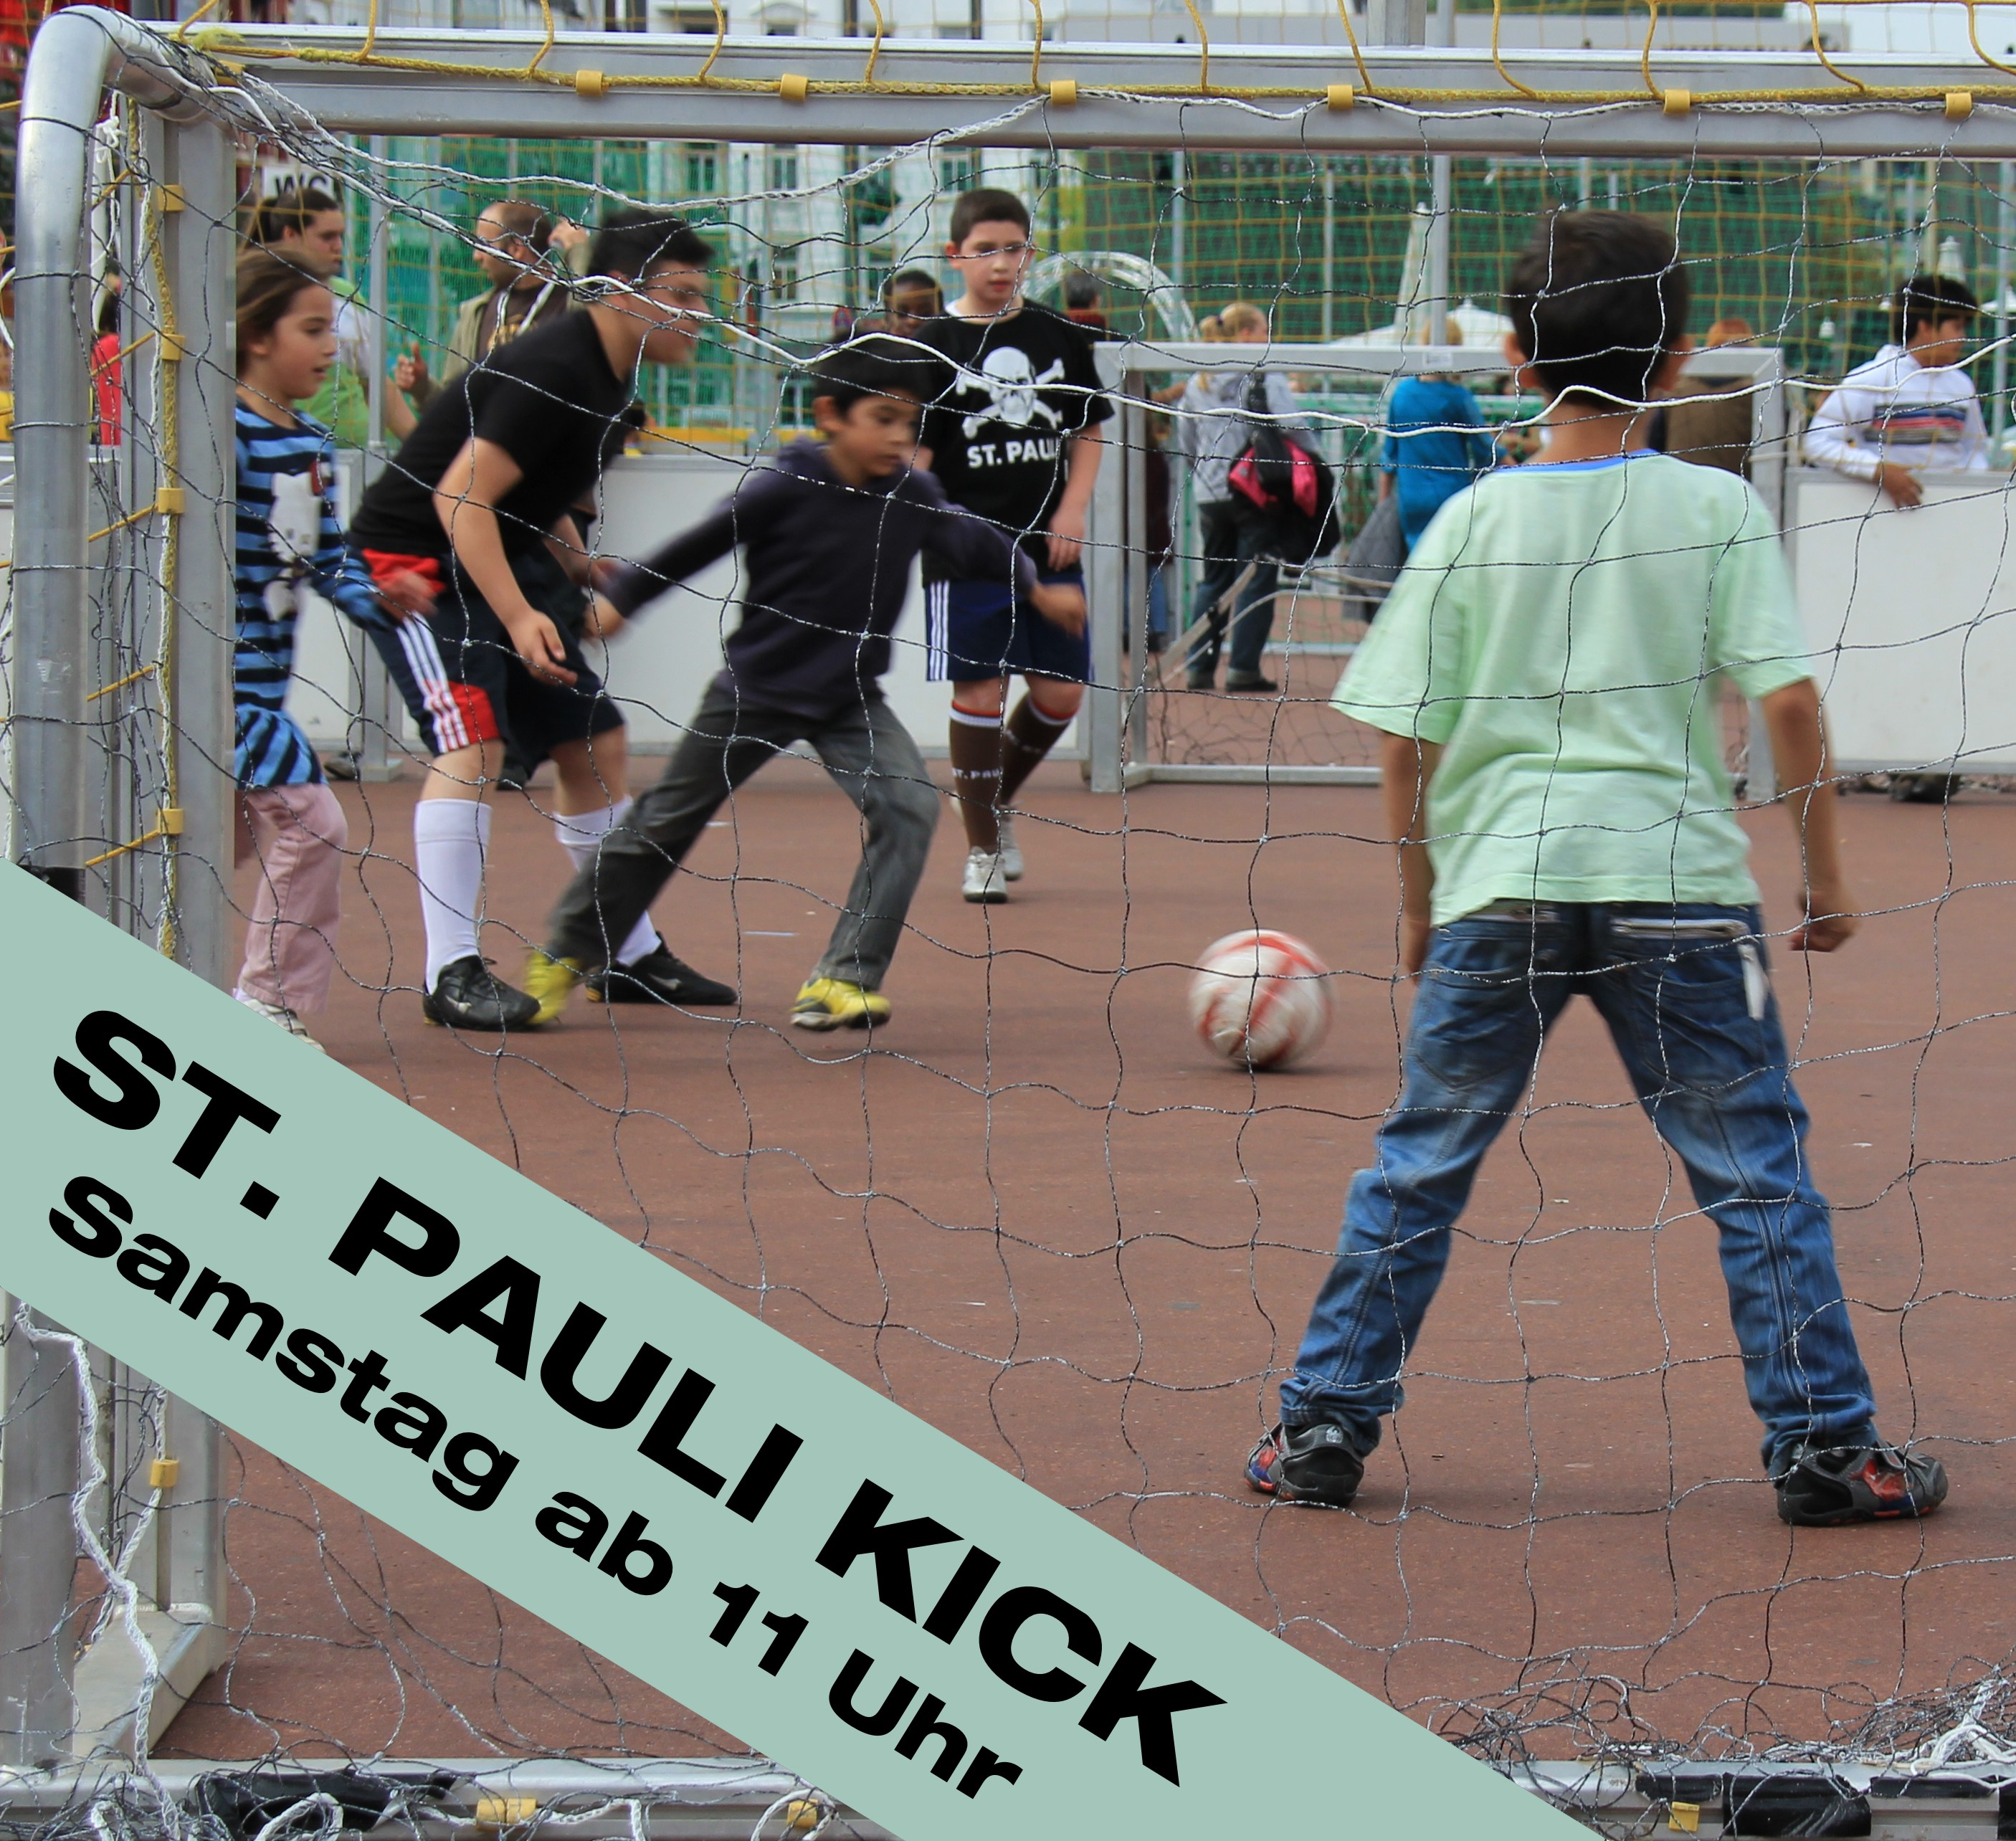 st pauli kick fu ballturnier spielbudenplatz hamburg st pauli. Black Bedroom Furniture Sets. Home Design Ideas